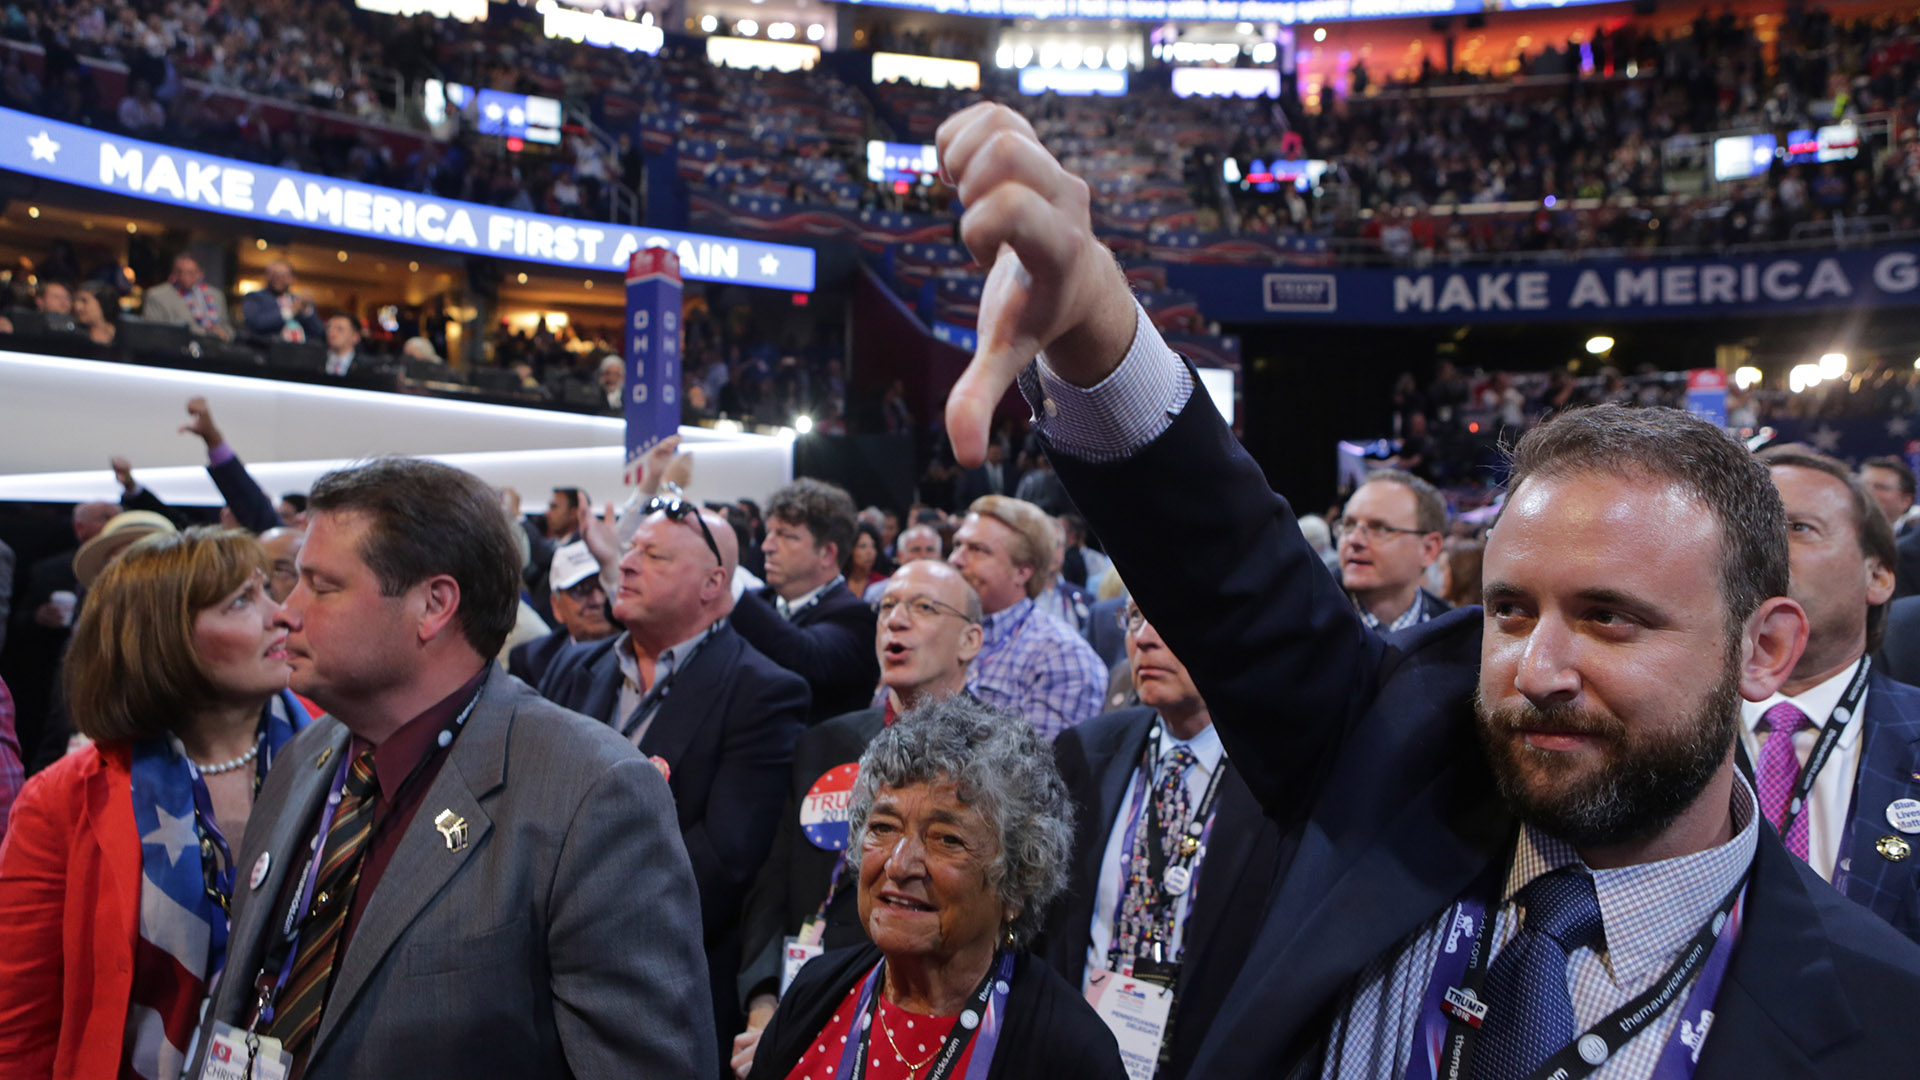 Seth Kaufer gives a thumbs down during Sen. Ted Cruz's speech on day three of the Republican National Convention, at the Quicken Loans Arena in Cleveland, July 20, 2016. Cruz spoke to mounting boos and chants of ?Keep your pledge!? as he declined to explicitly endorse Donald Trump. (Sam Hodgson/The New York Times)